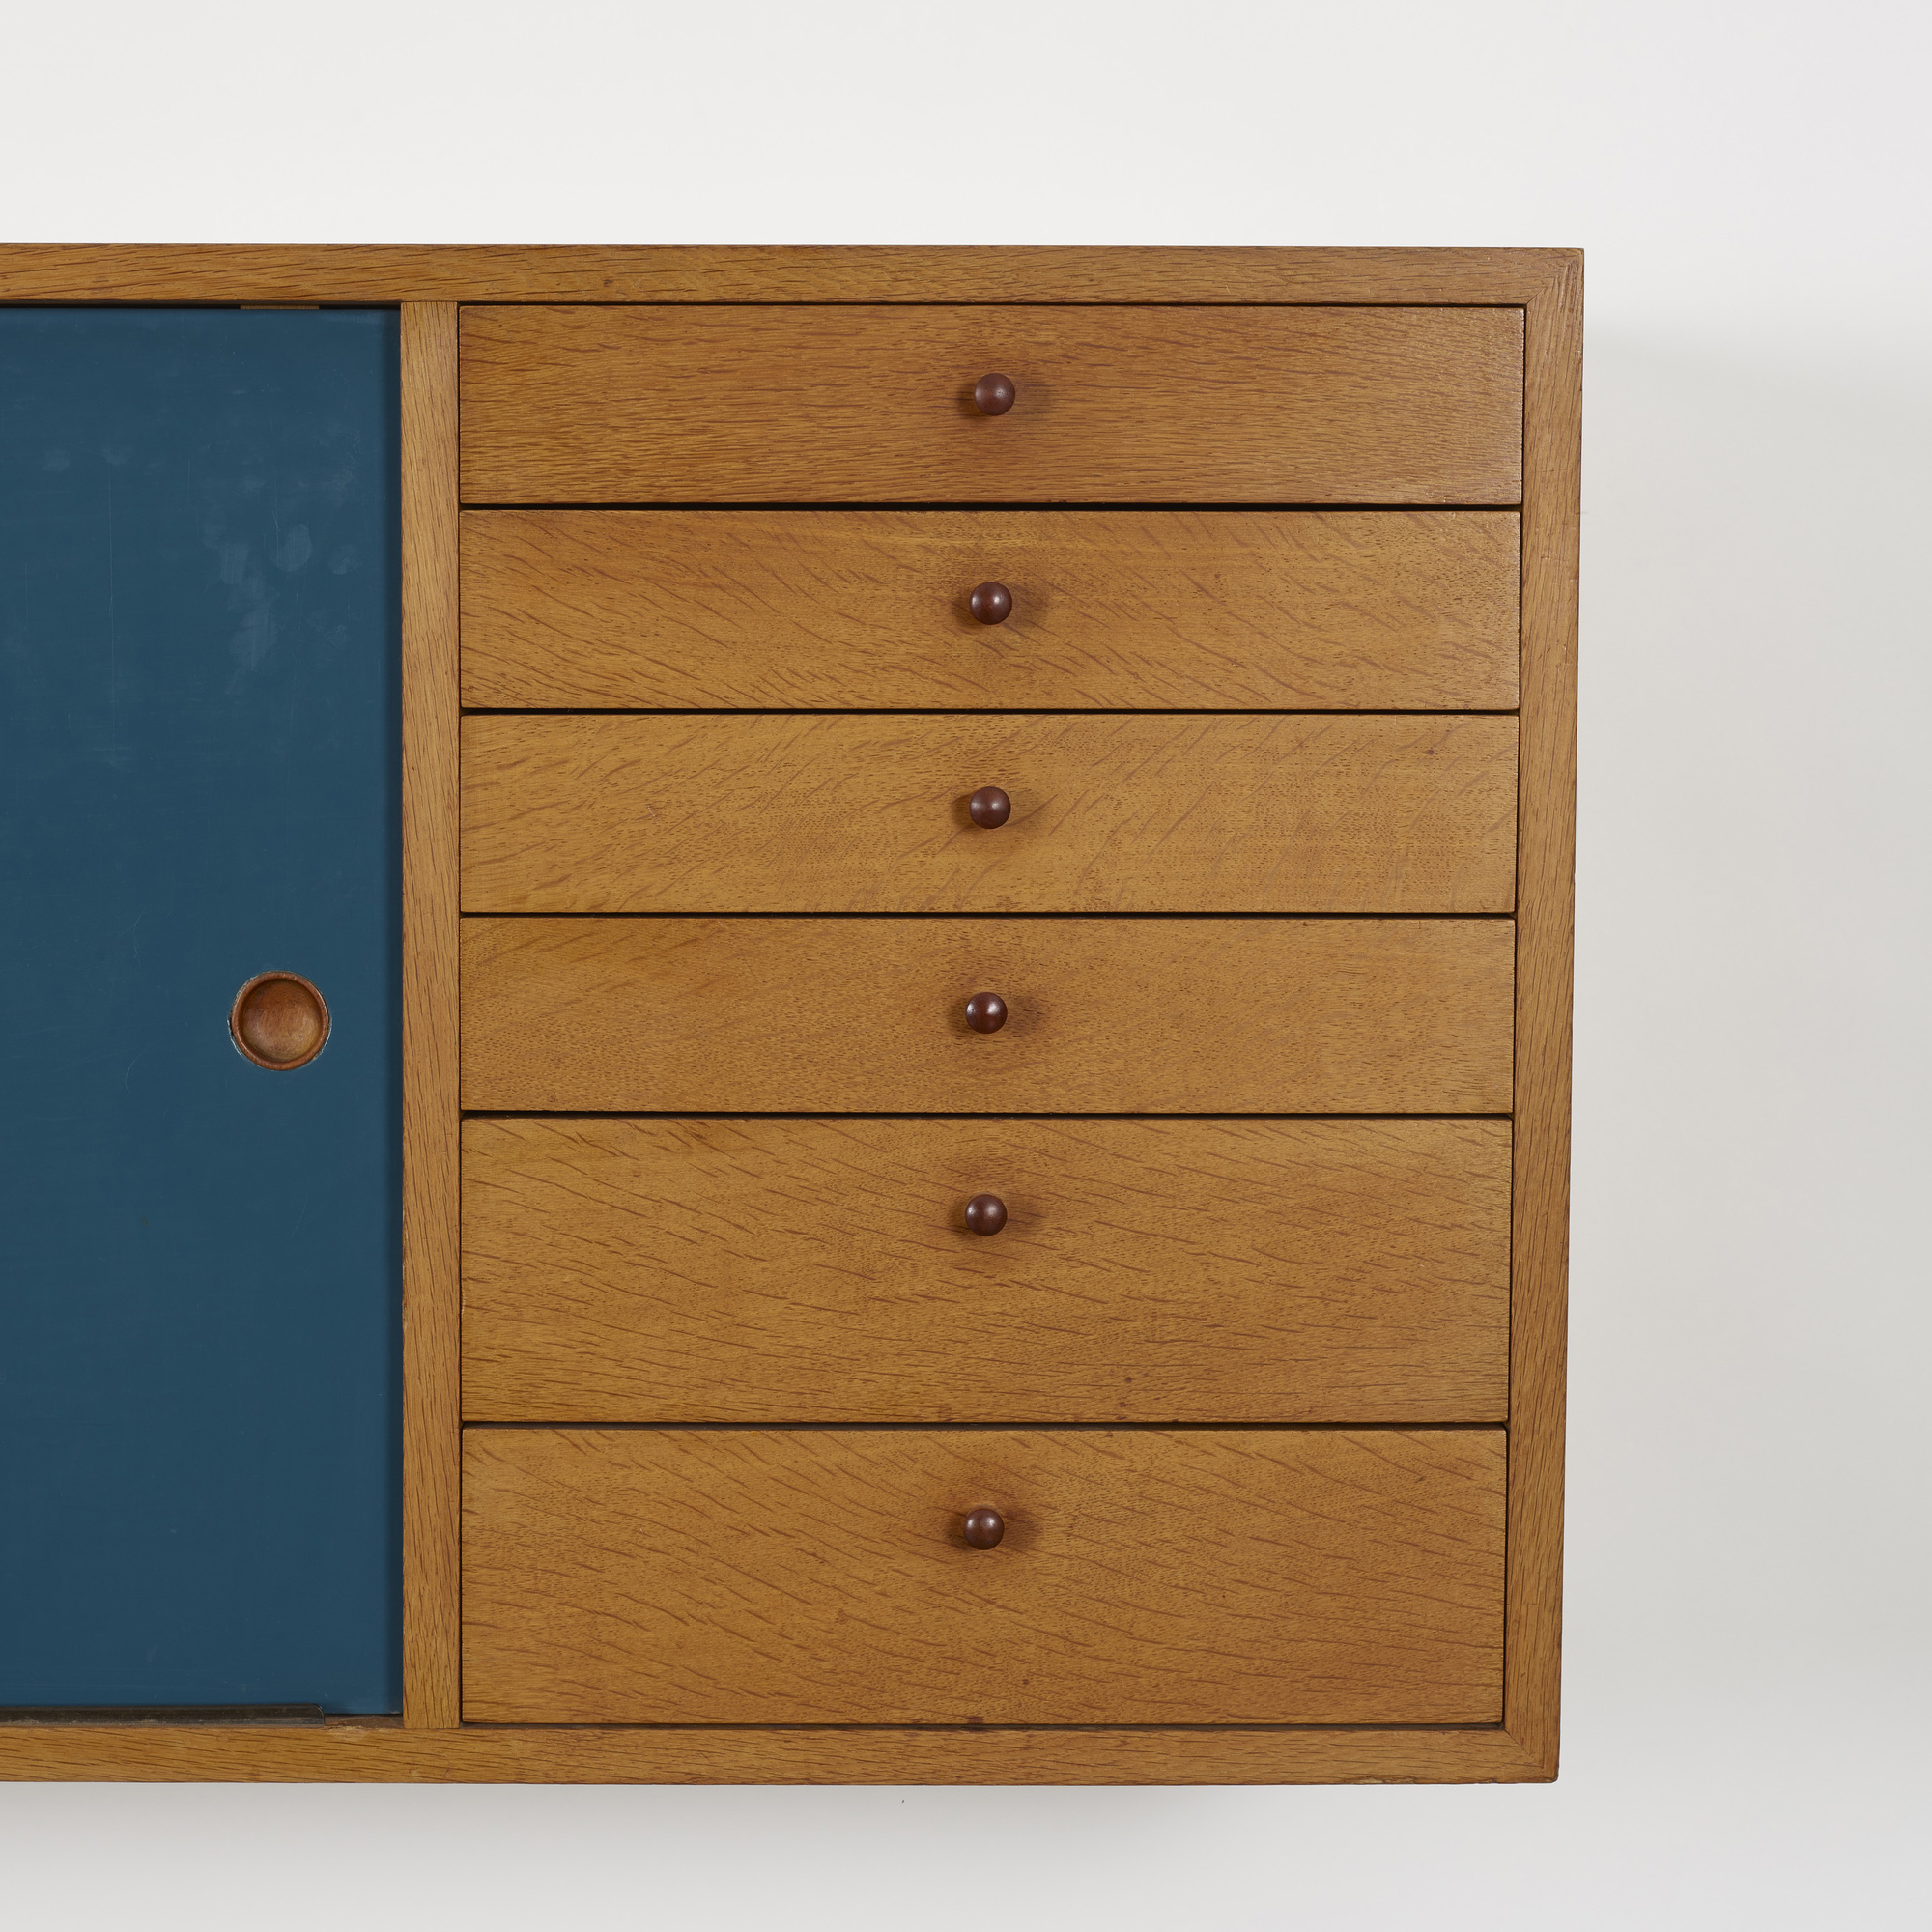 263: Arne Vodder / wall-mounted cabinet (3 of 3)